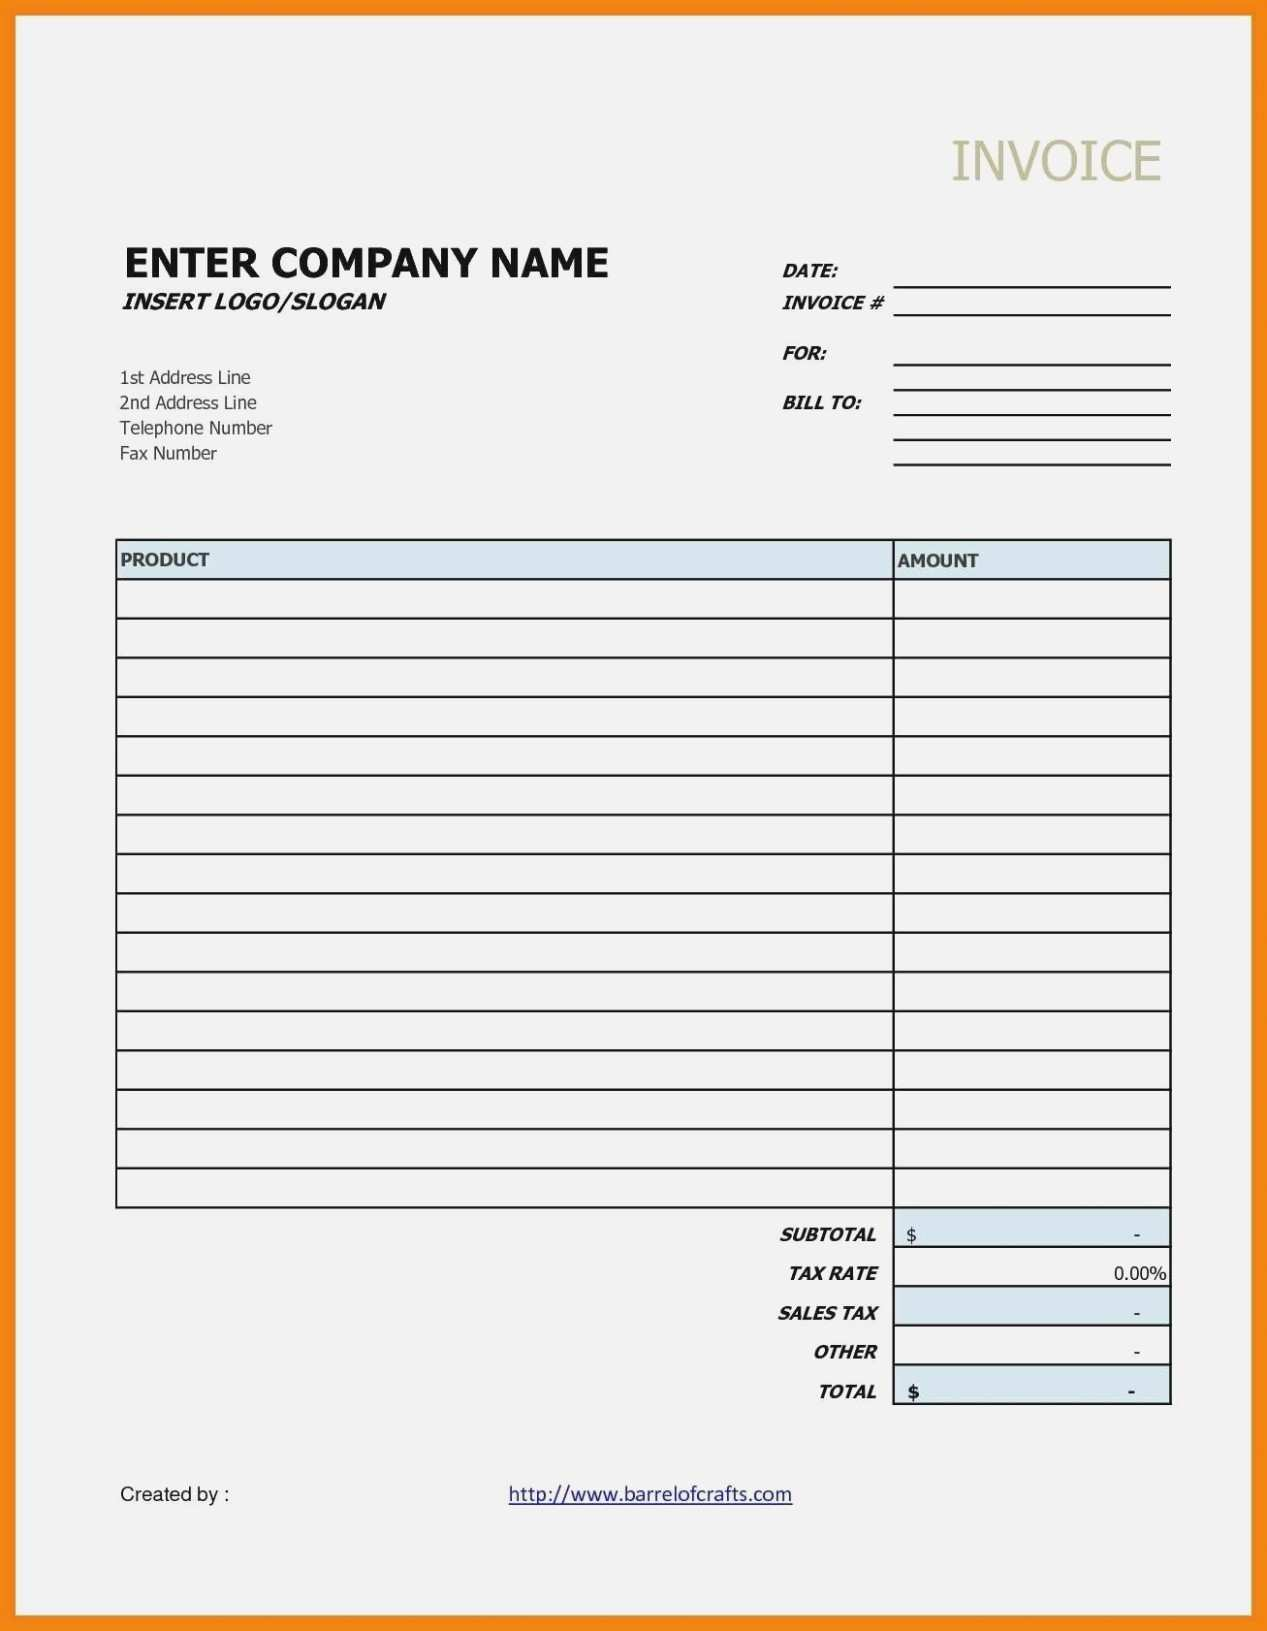 30 Report Invoice Template Google Docs Layouts for Invoice ...